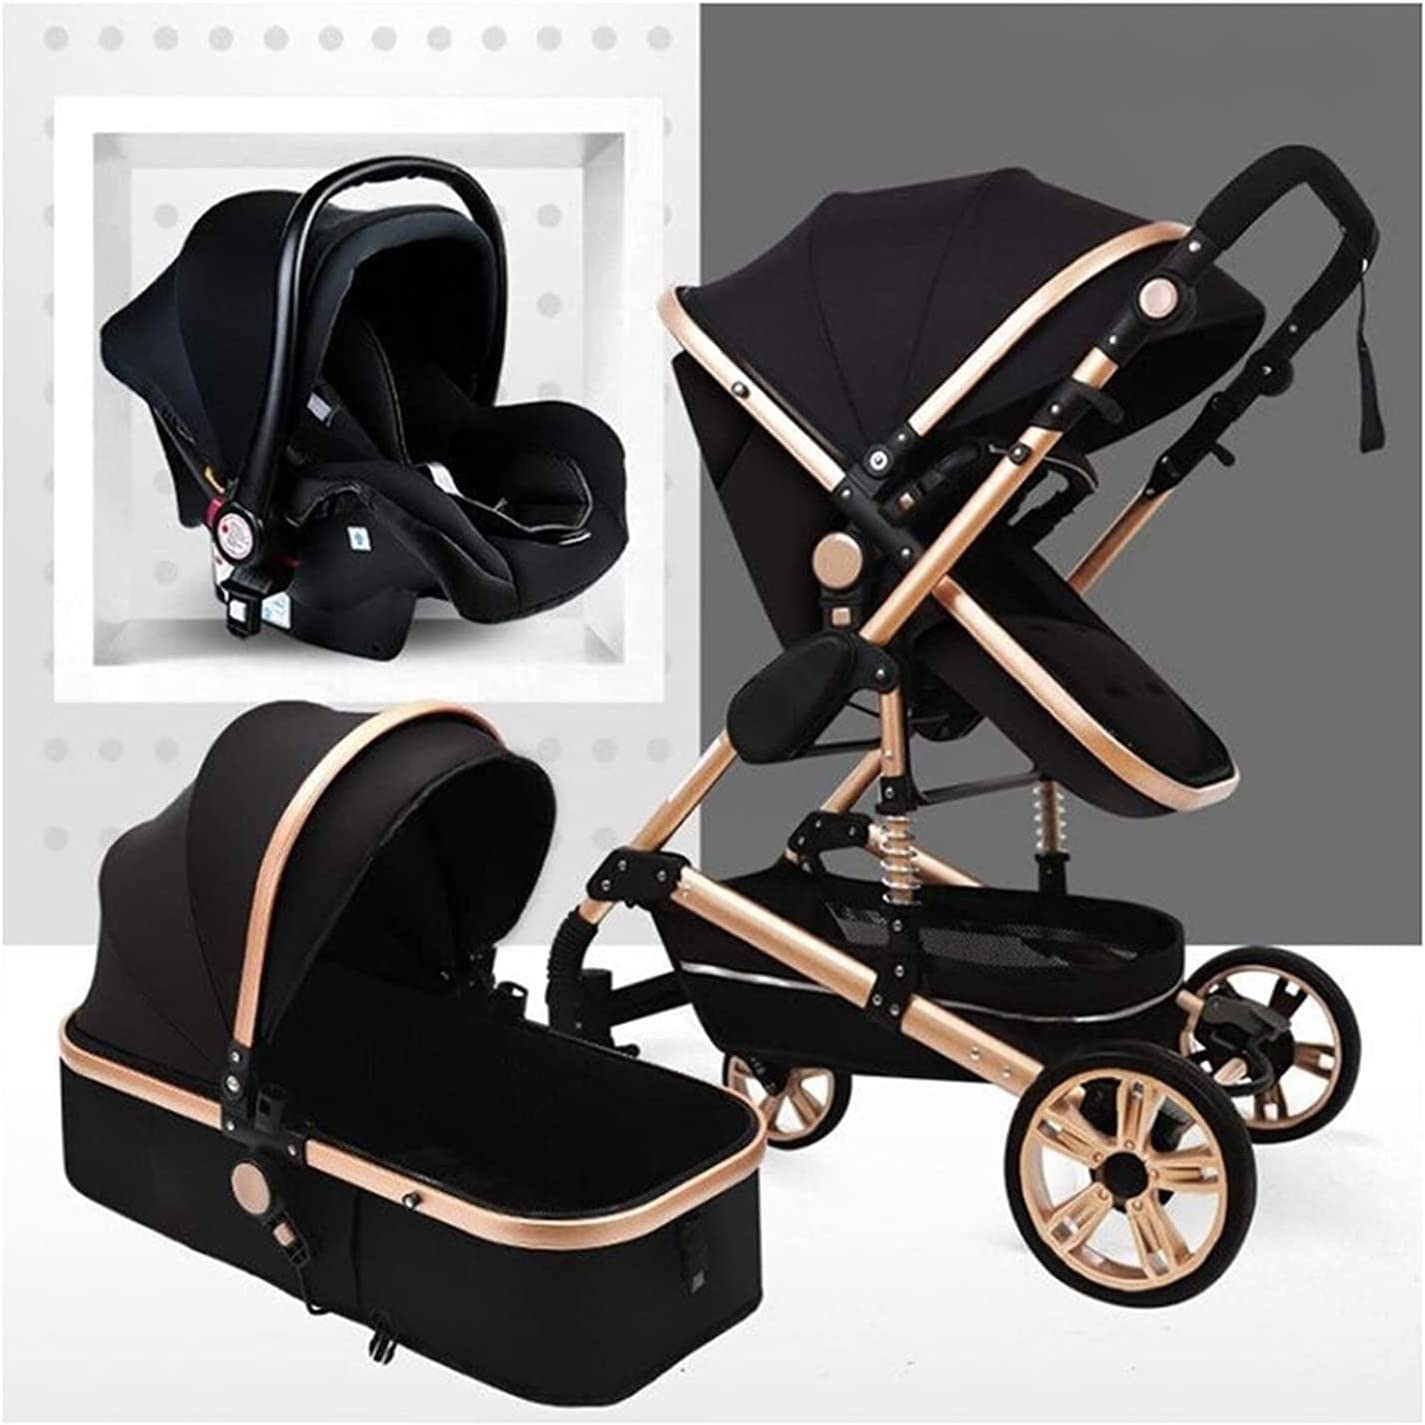 Yuansr 3 in 1 Baby Latest item Luxury Foldable Carriage Ba Oakland Mall Stroller